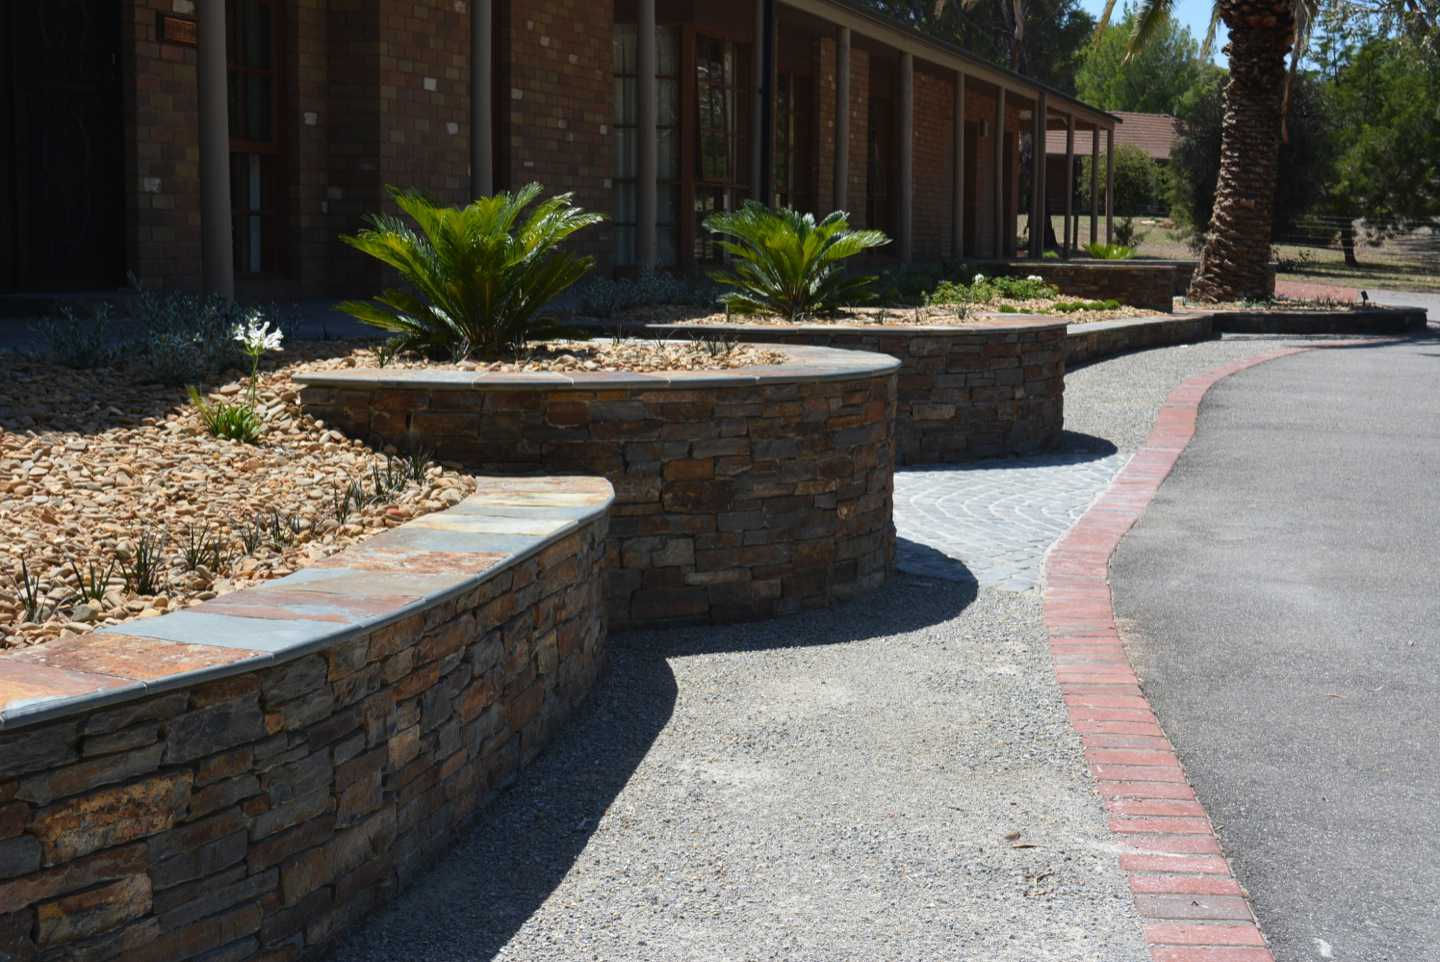 Curved stone walls